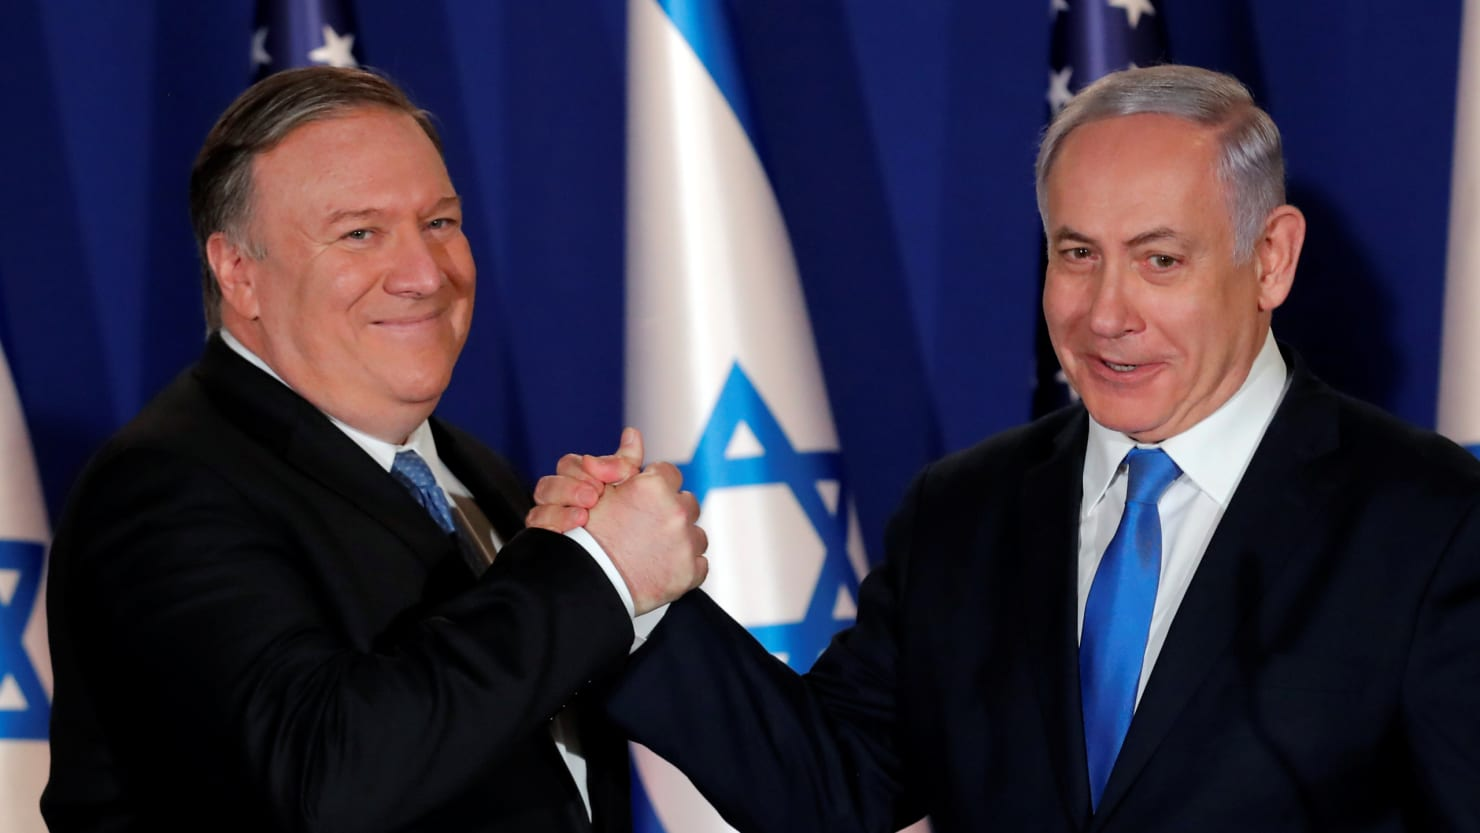 Pompeo: It's 'Possible' Trump Was Sent by God to Save the Jewish People From Iran